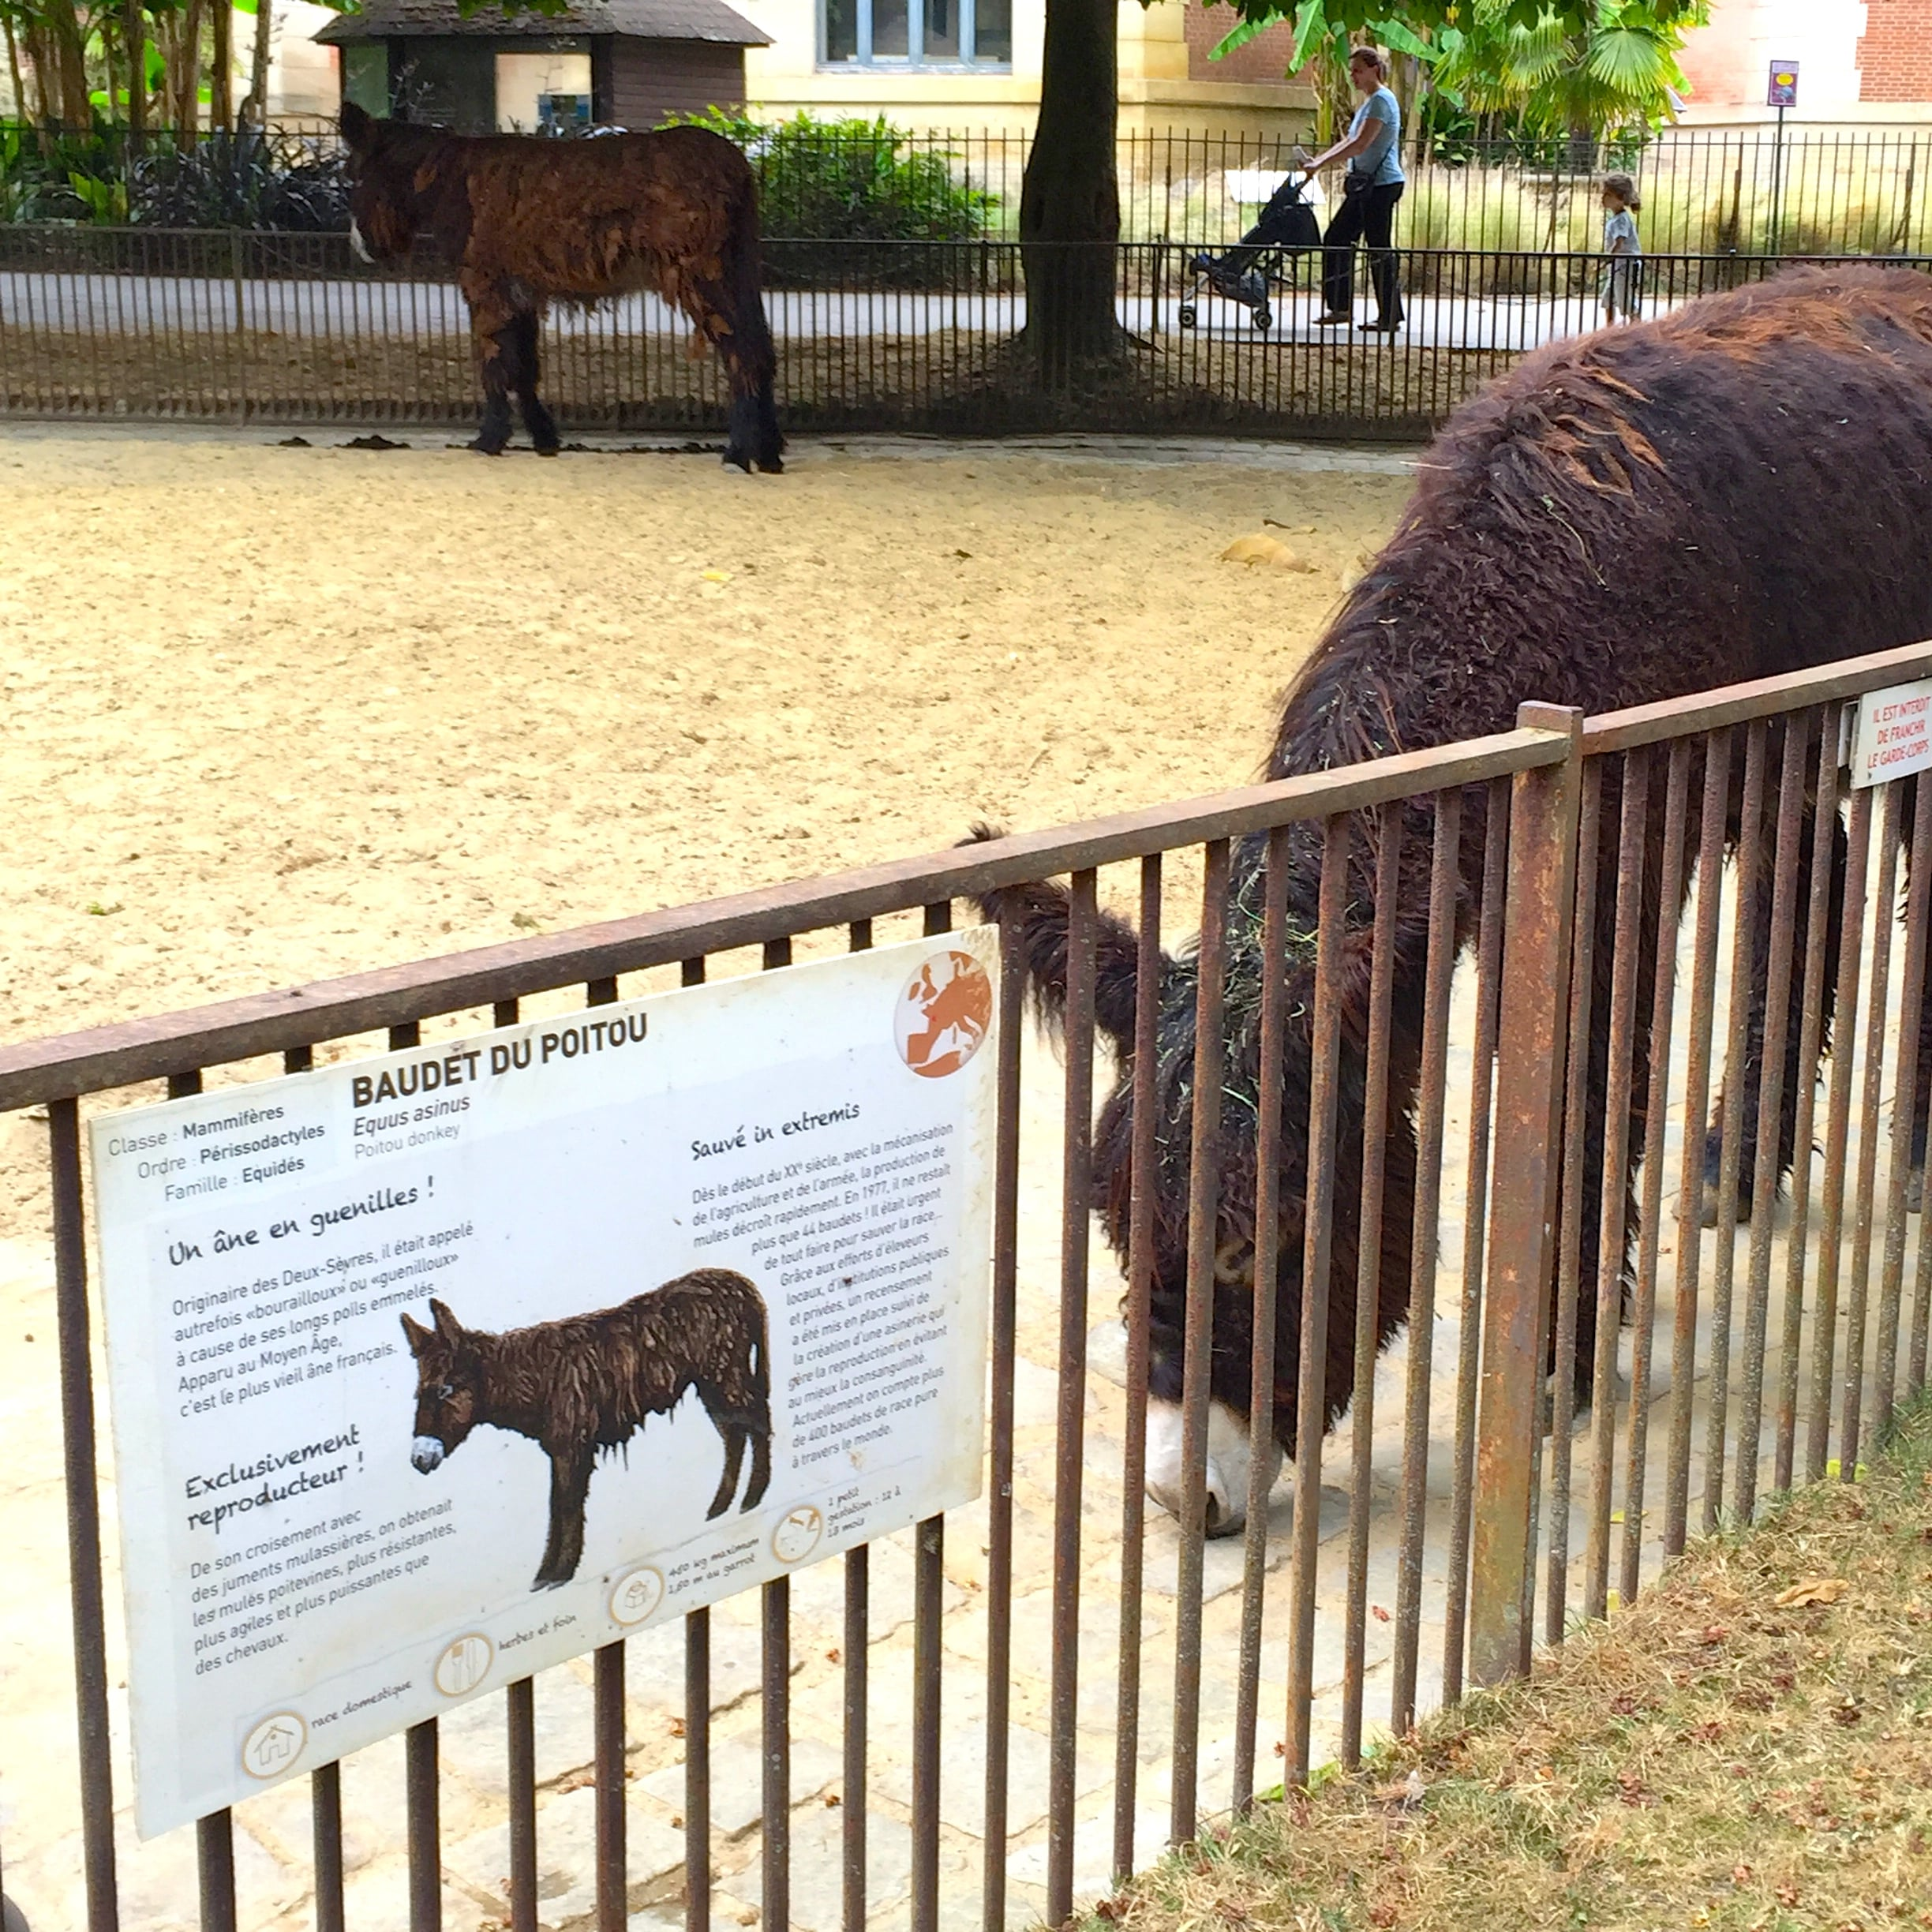 The shaggy French donkeys (baudets de Poitou) at the Ménagerie, Jardin des Plantes